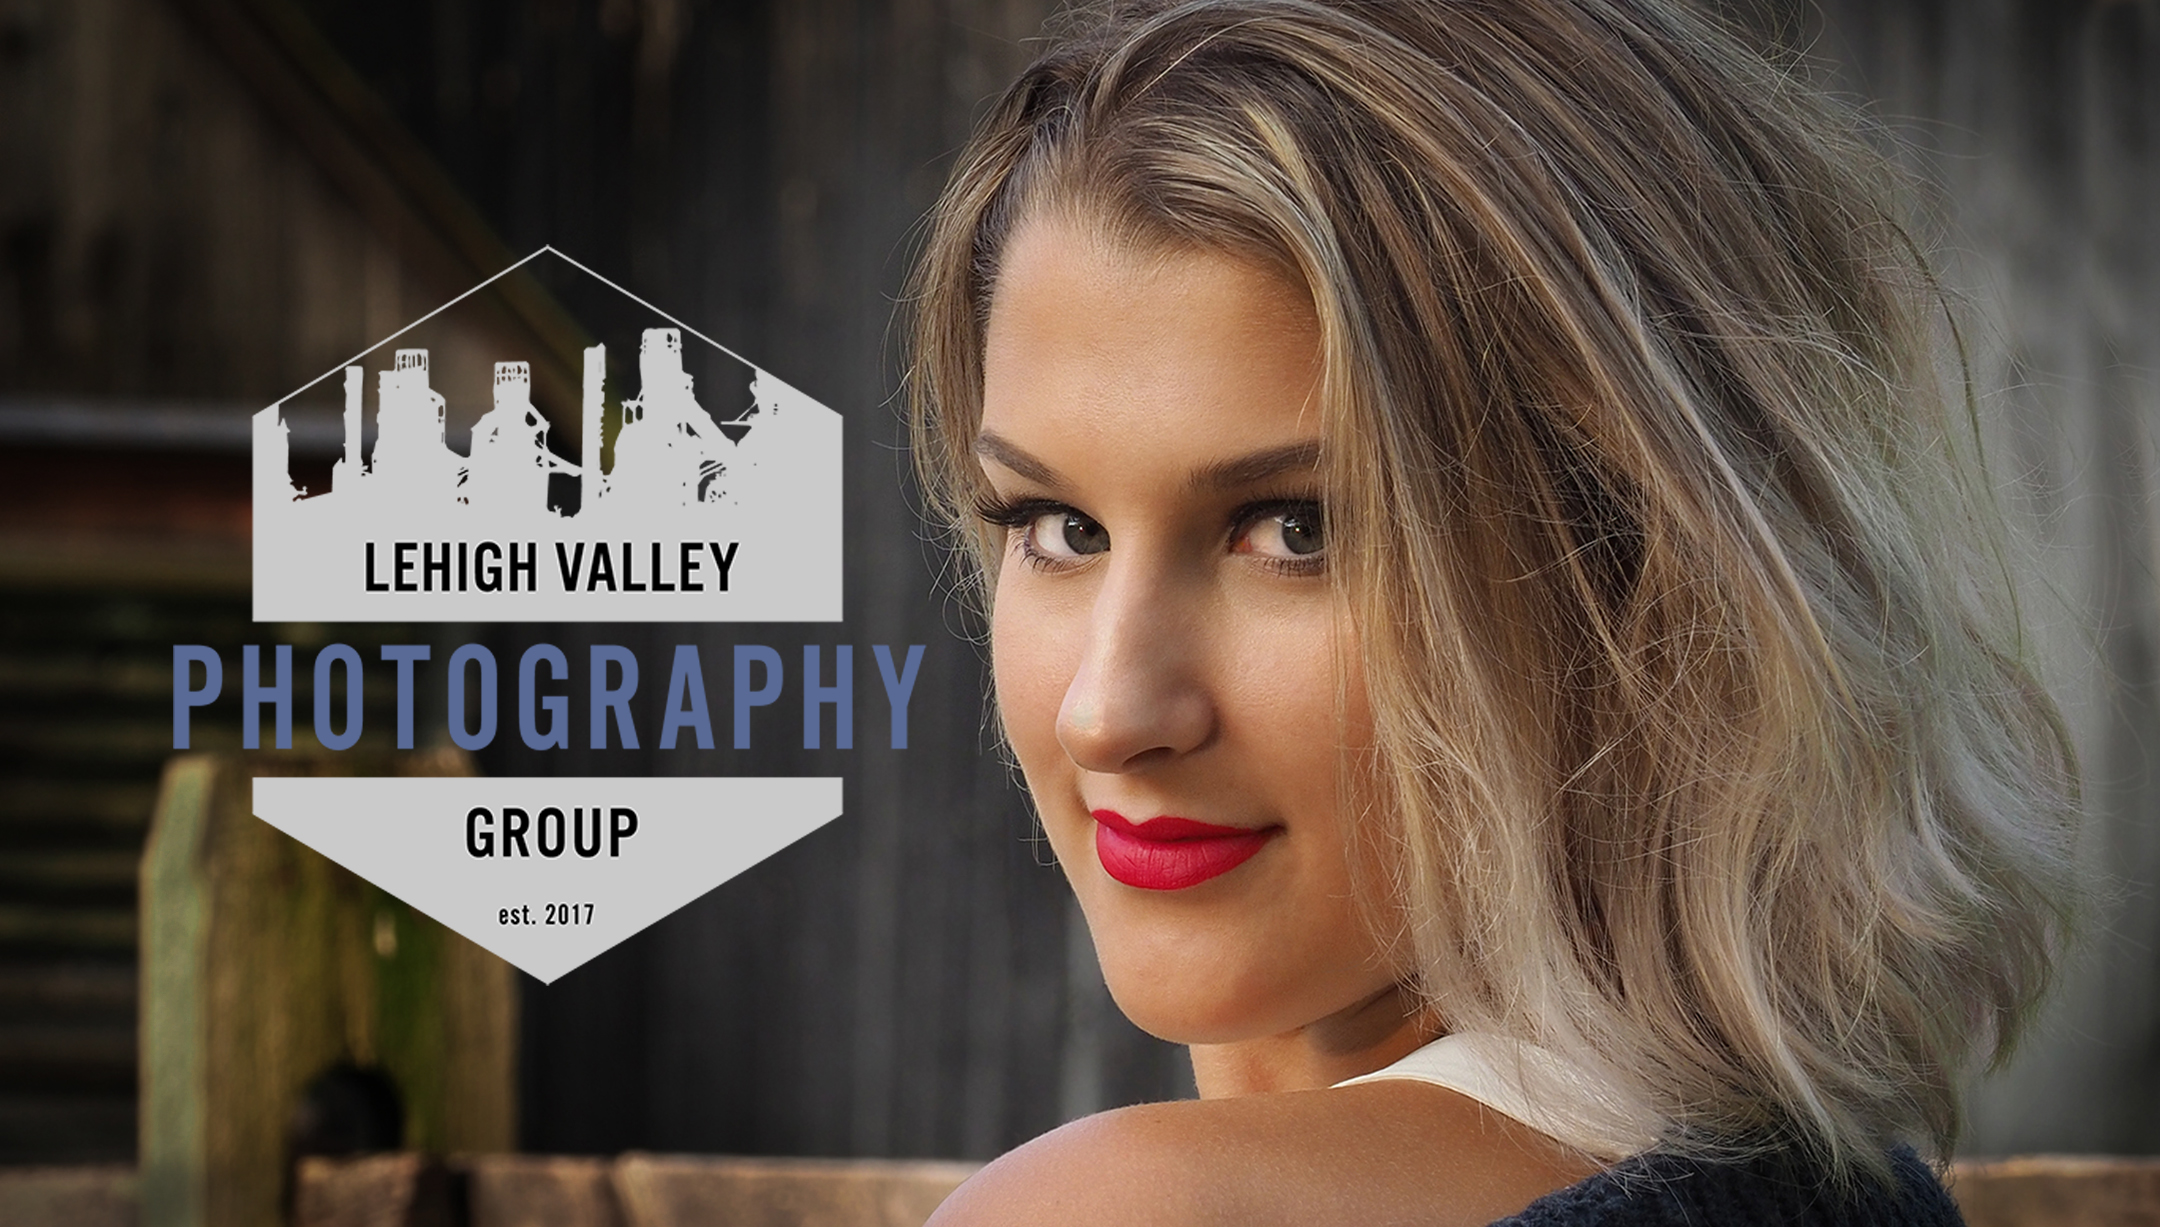 Lehigh Valley Photography Group Photography Contest - logo